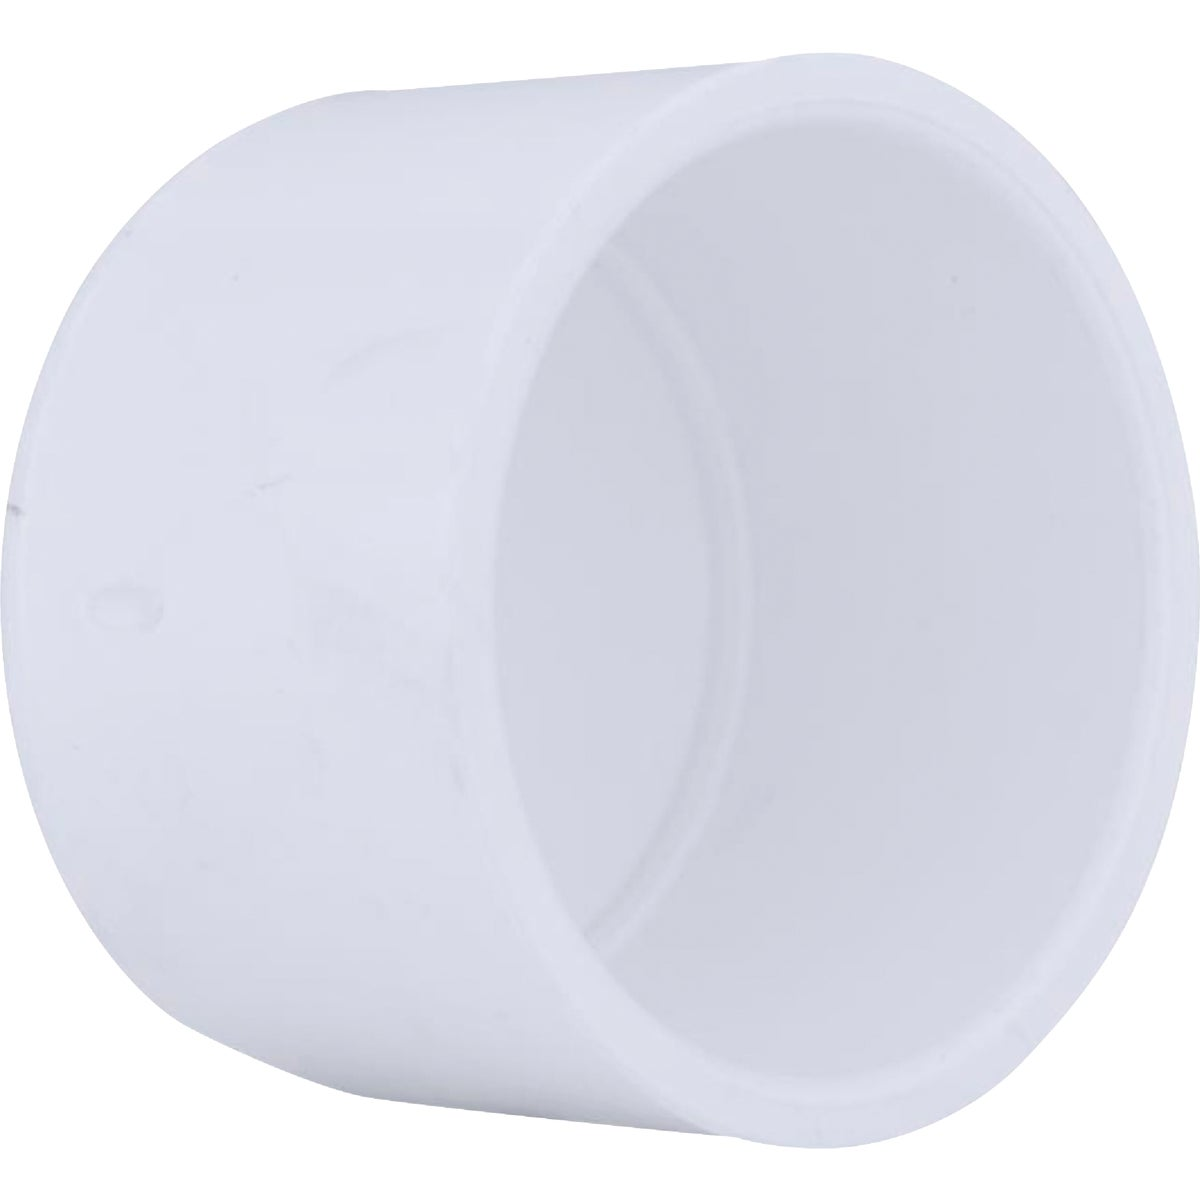 "2 1/2"" SLIP CAP - 30150 by Genova Inc"